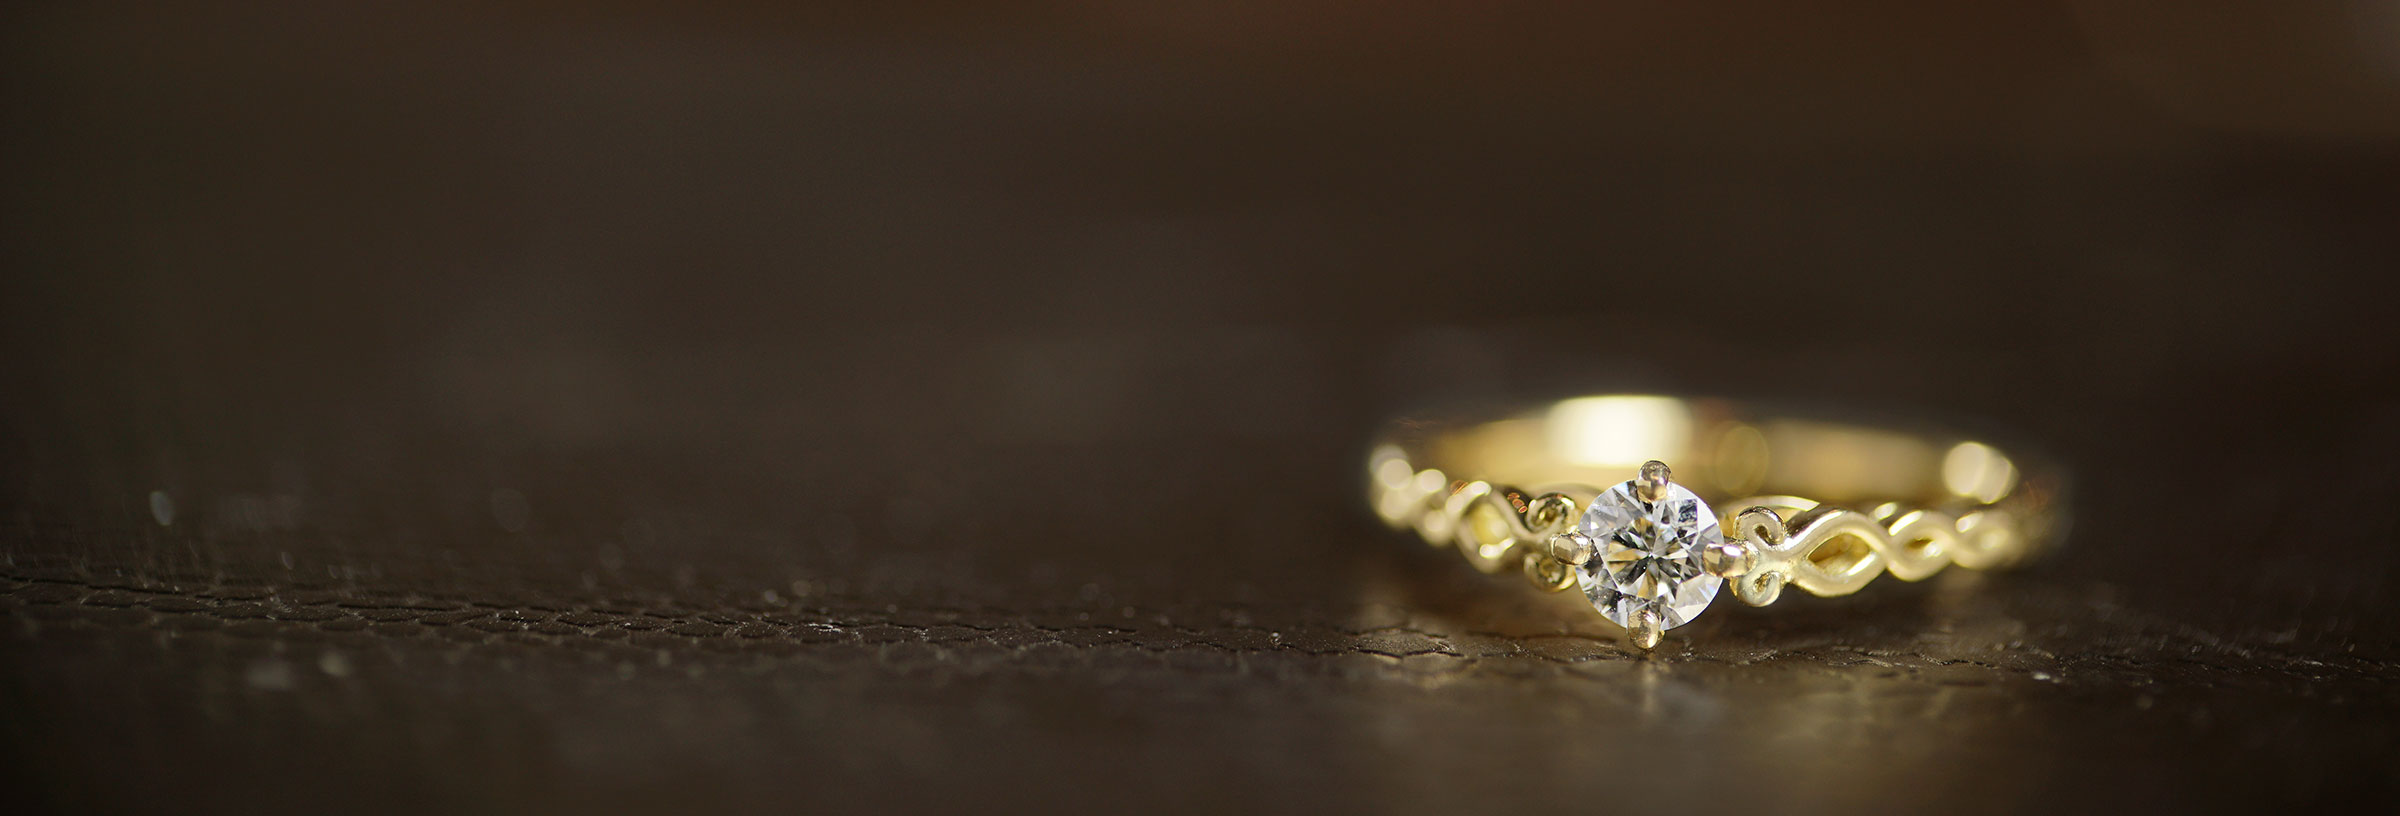 fairtrade-yellow-gold-twisting-vines-solitaire-engagement-ring